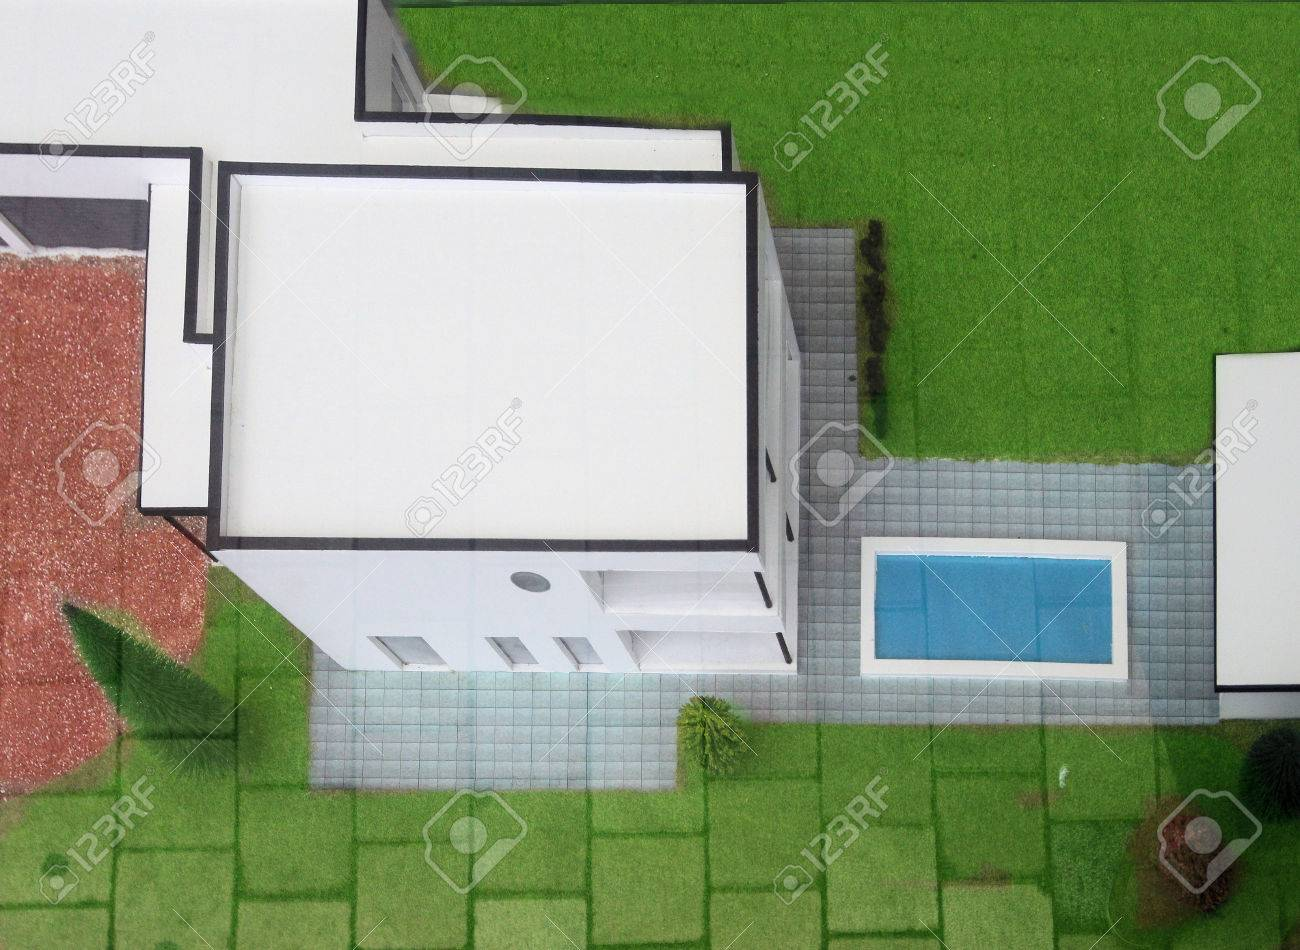 aerial view on a bungalow model with swimming pool stock photo 35082034